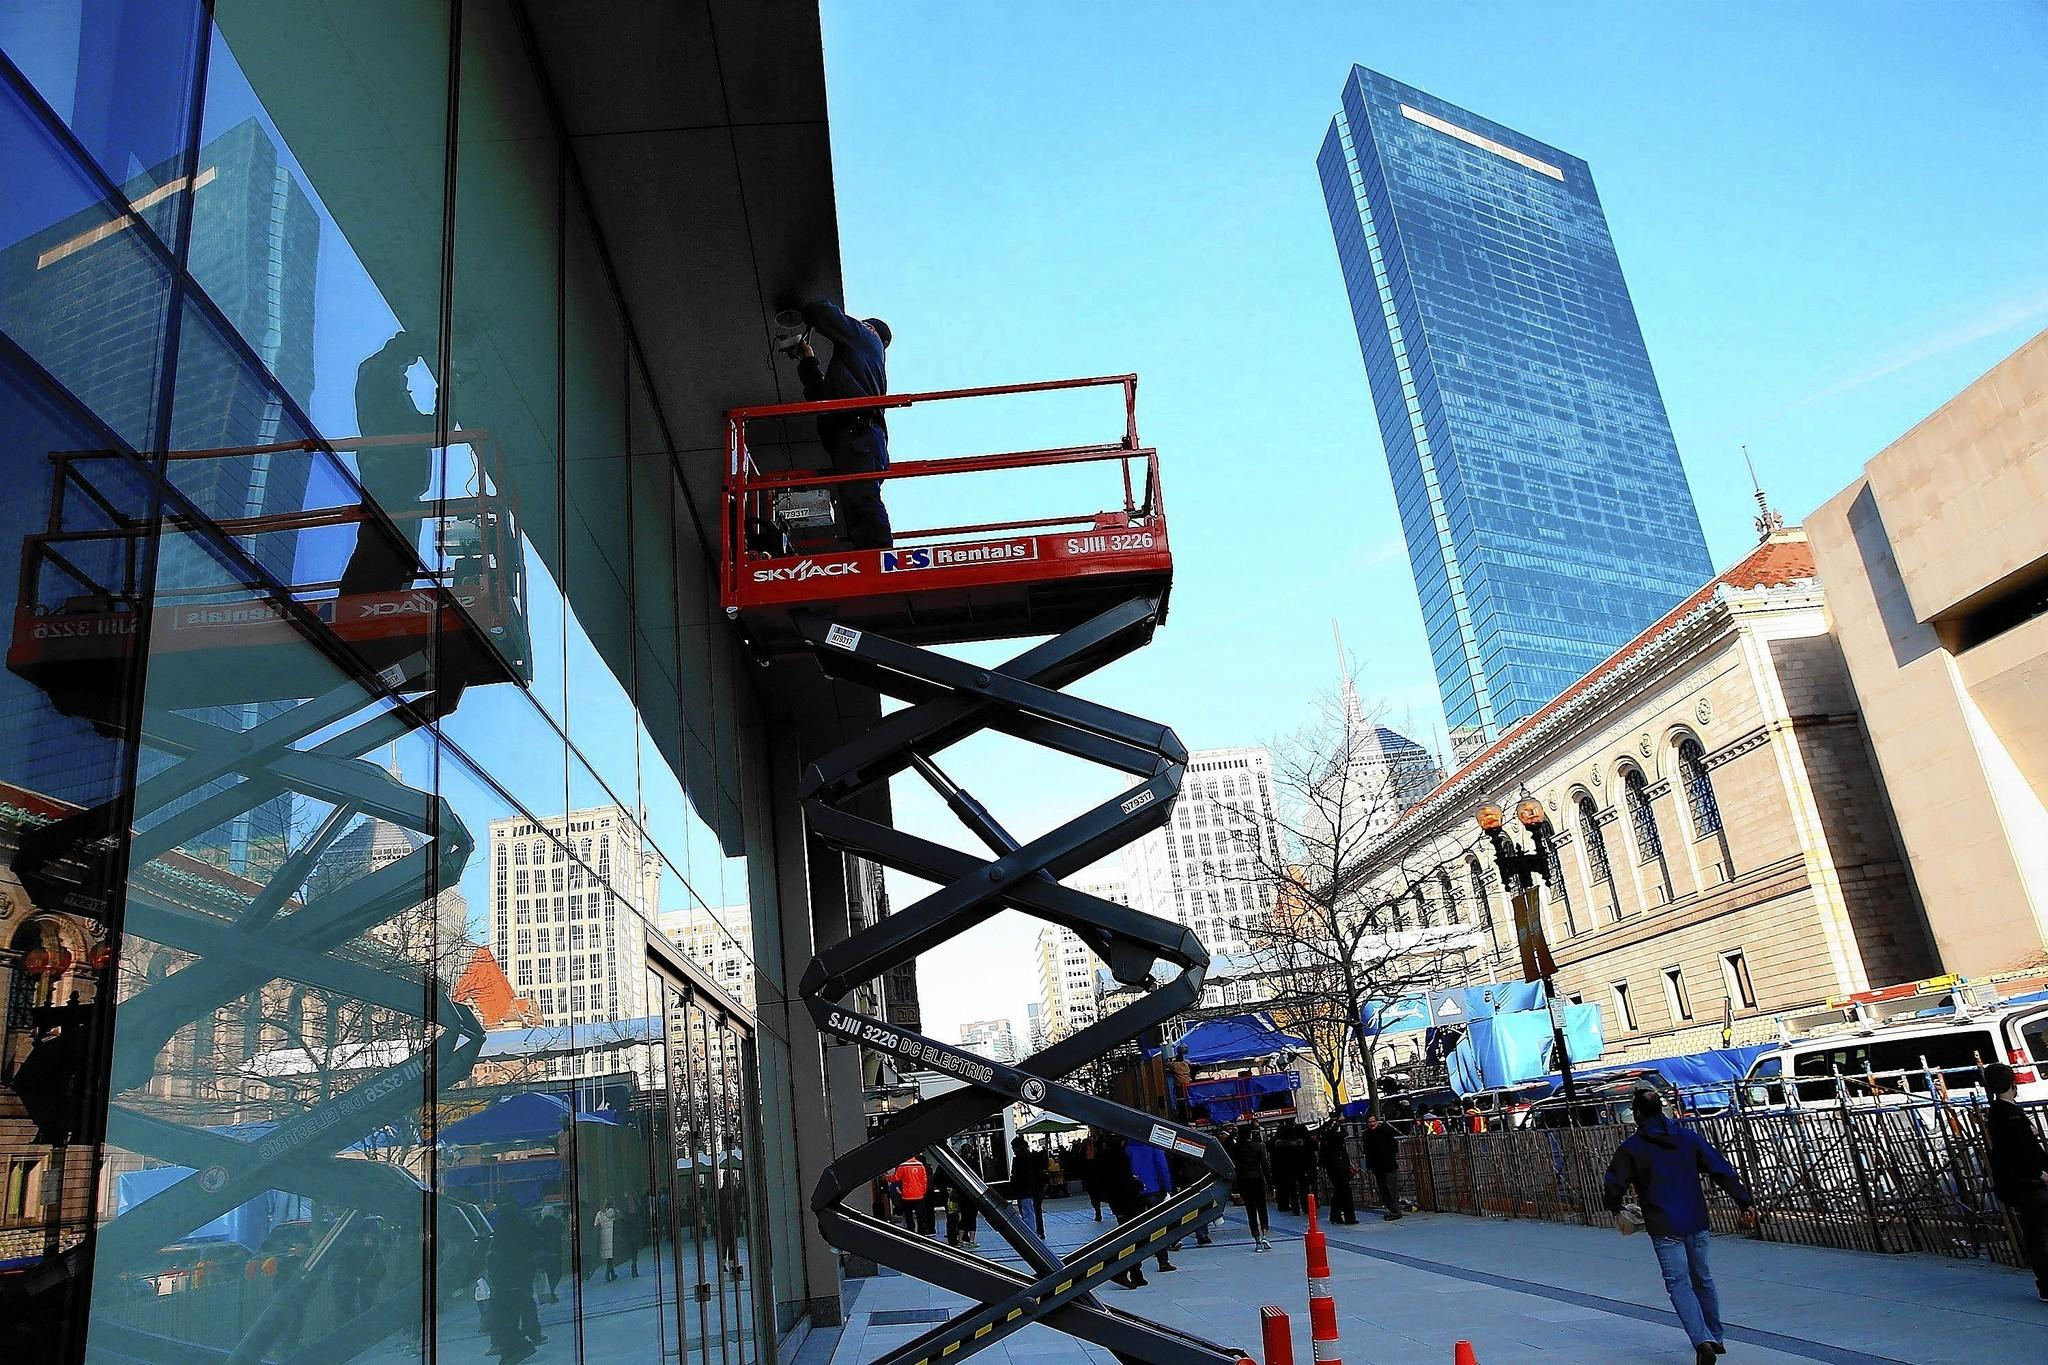 A security camera, one of 100 along the route of the Boston Marathon, is installed on Boylston Street near the finish line. The race will be held Monday.